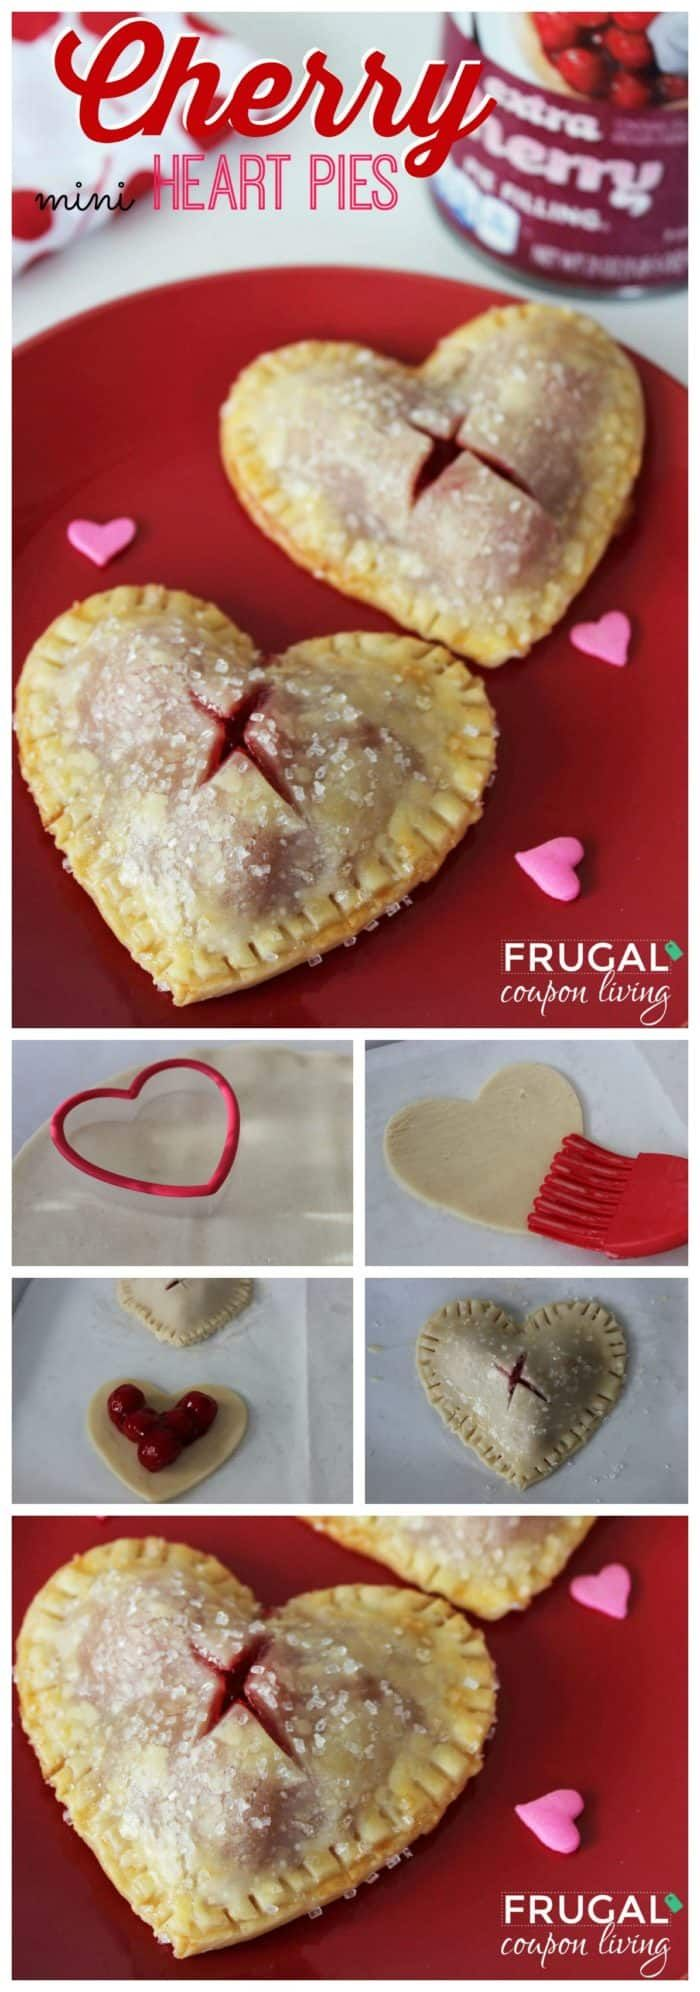 Mini Cherry Heart Pies Valentines Day Recipe. This dessert recipe is so easy for the Kids